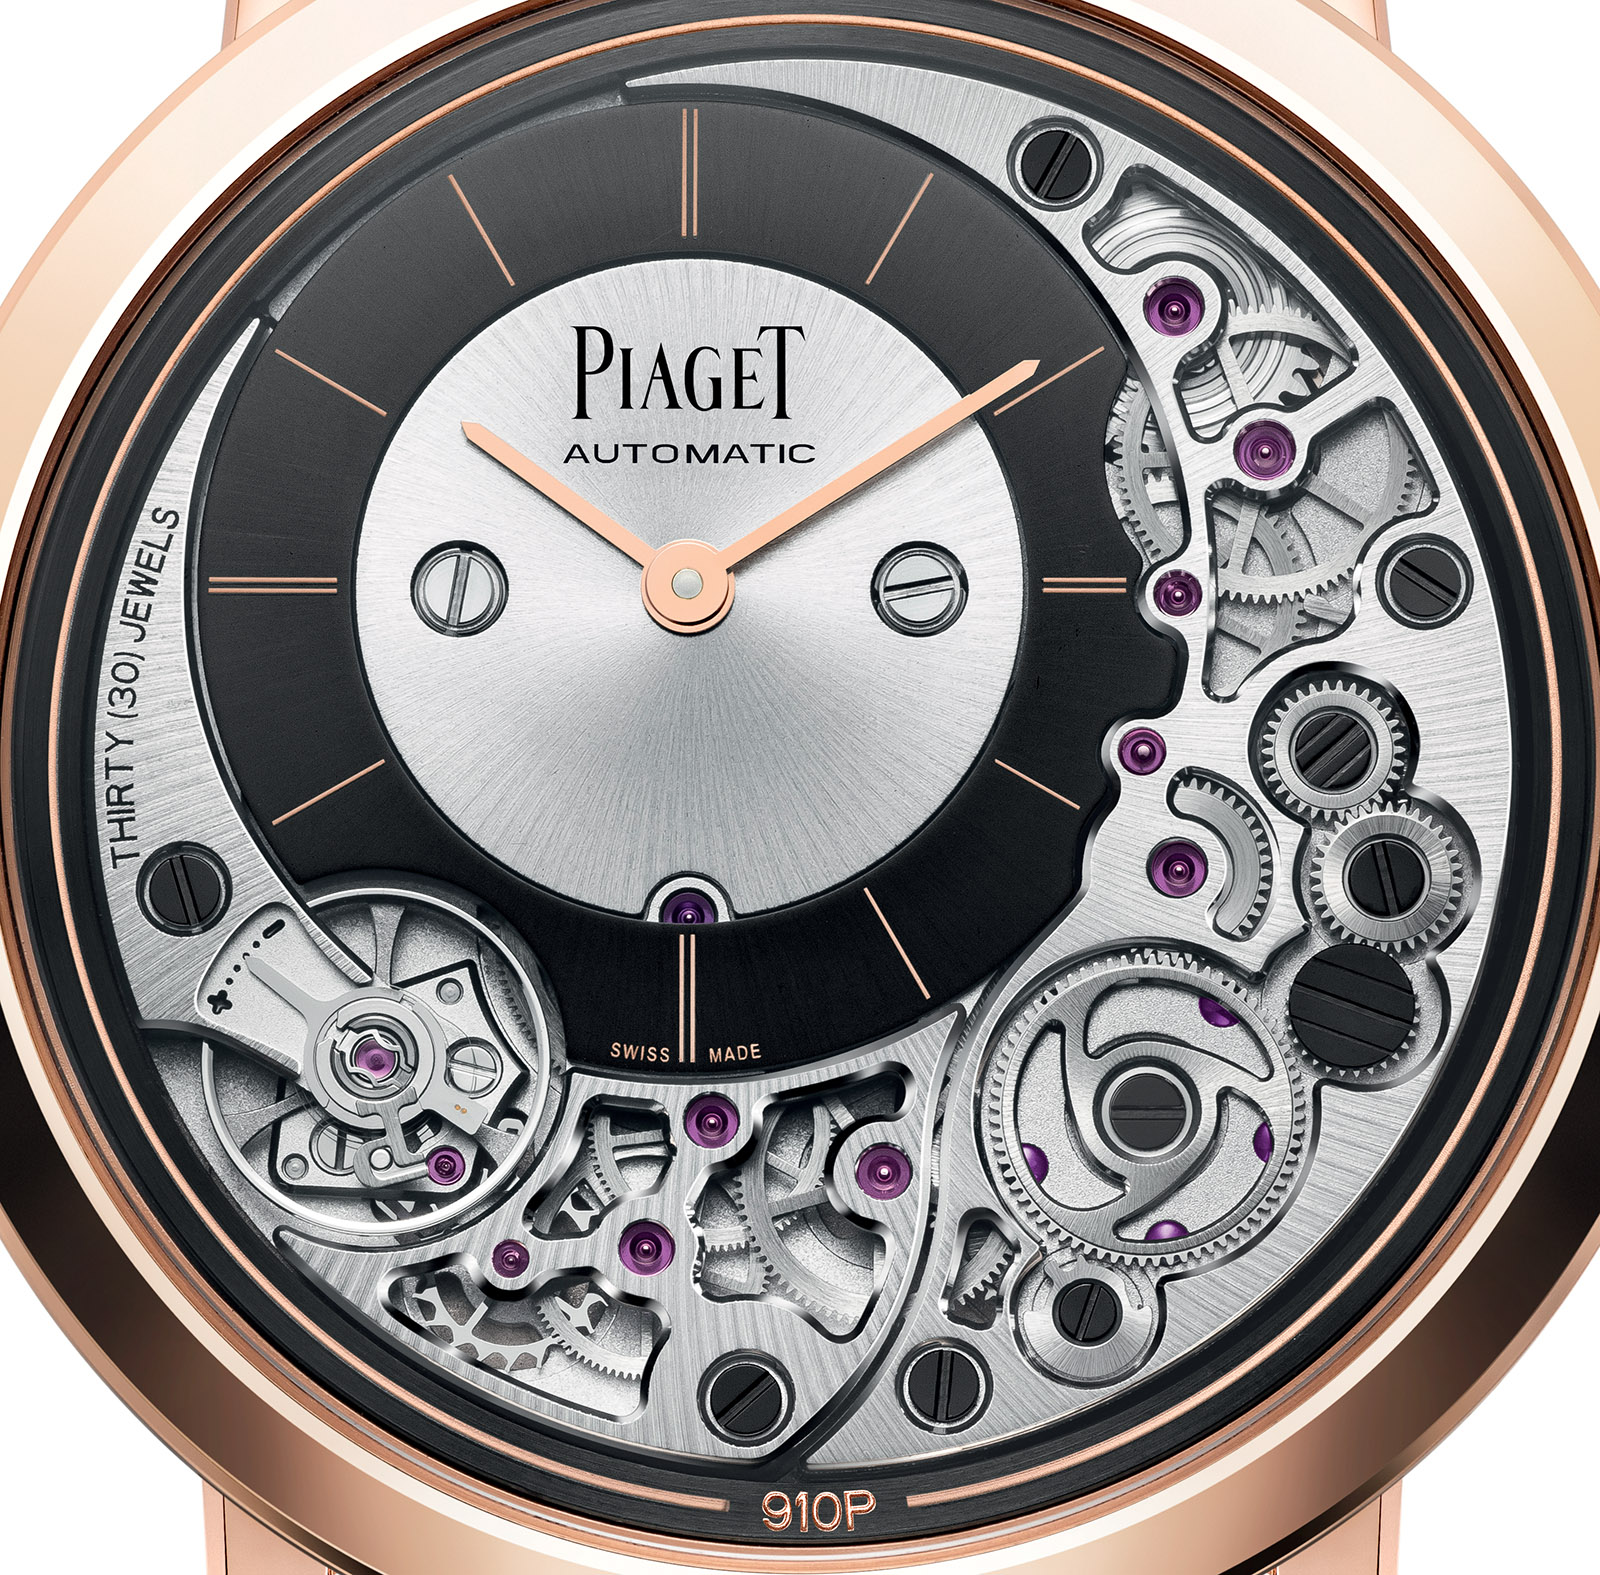 Piaget Altiplano Ultimate Automatic 910P 4